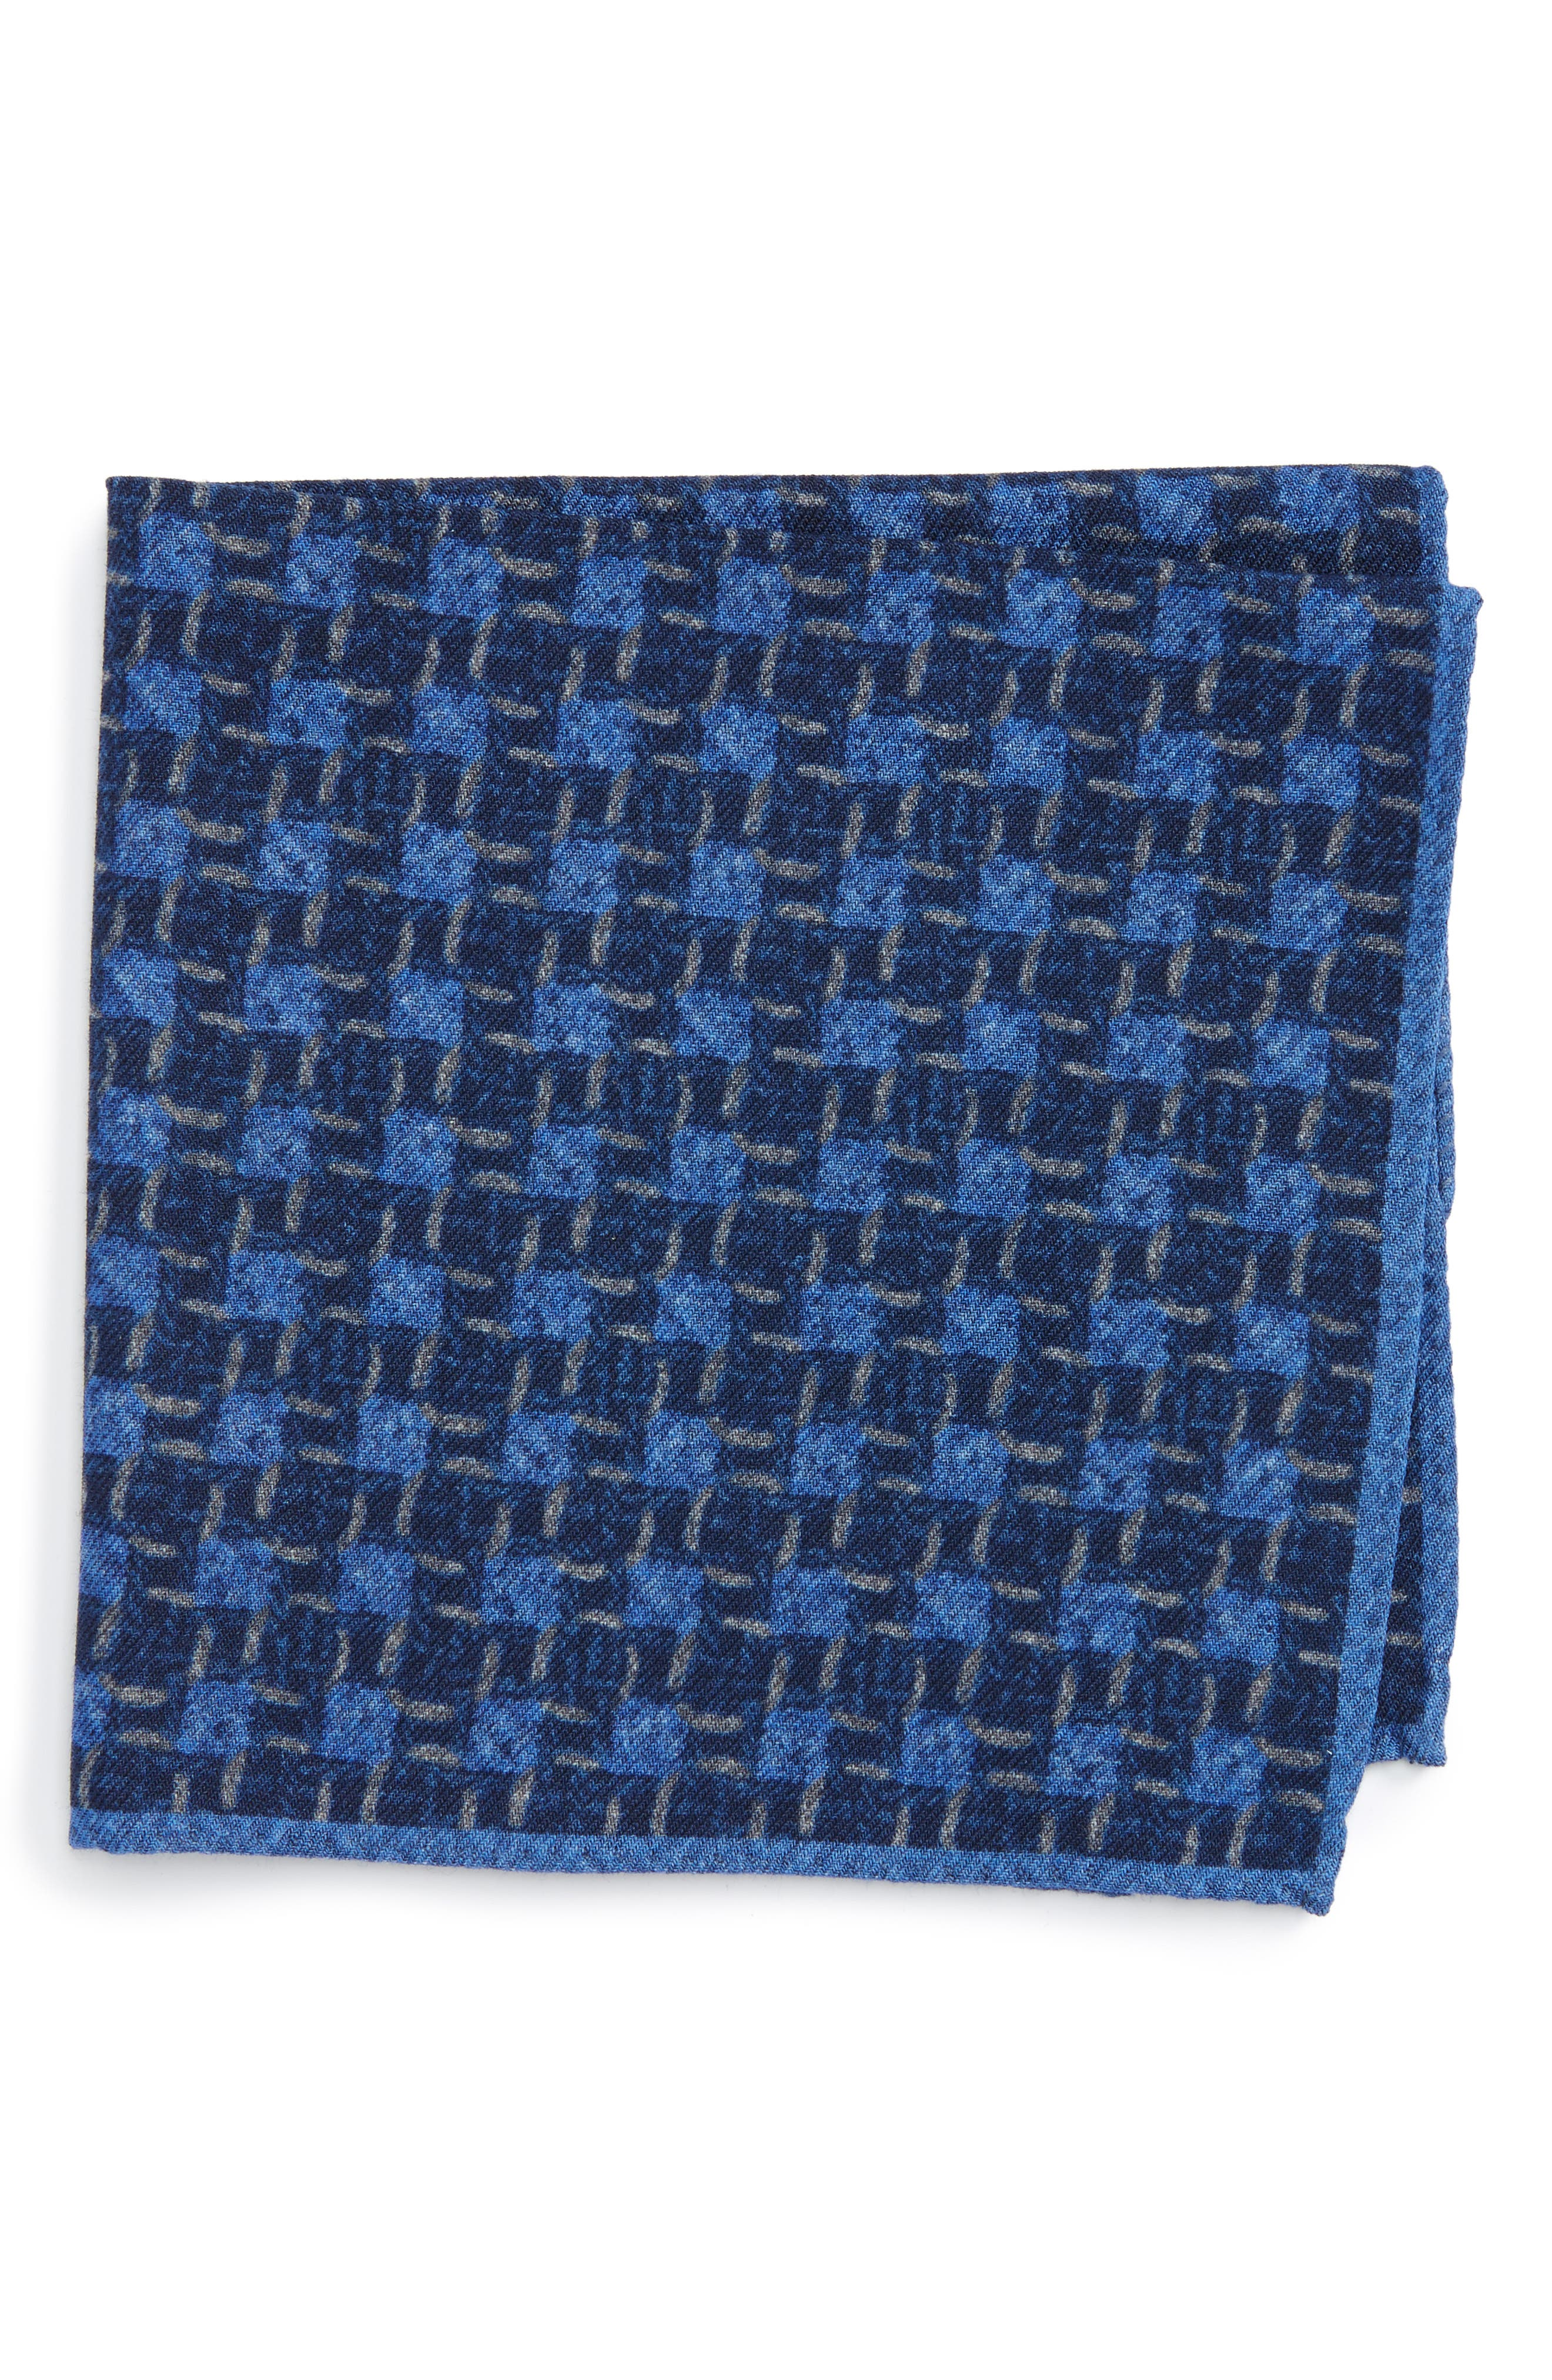 Grid Wool Pocket Square,                             Main thumbnail 1, color,                             411